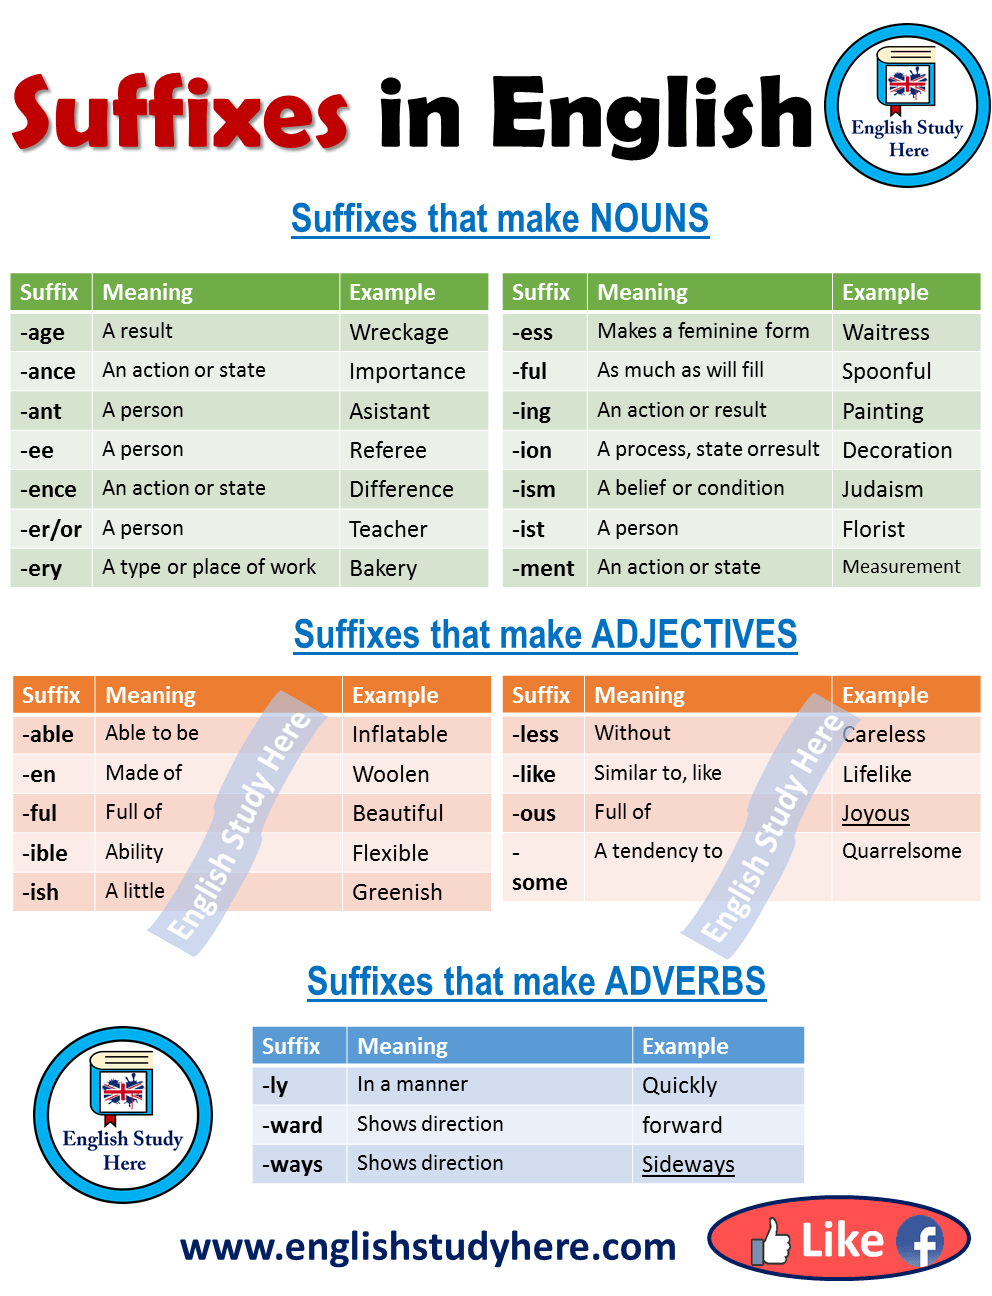 suffixes in english